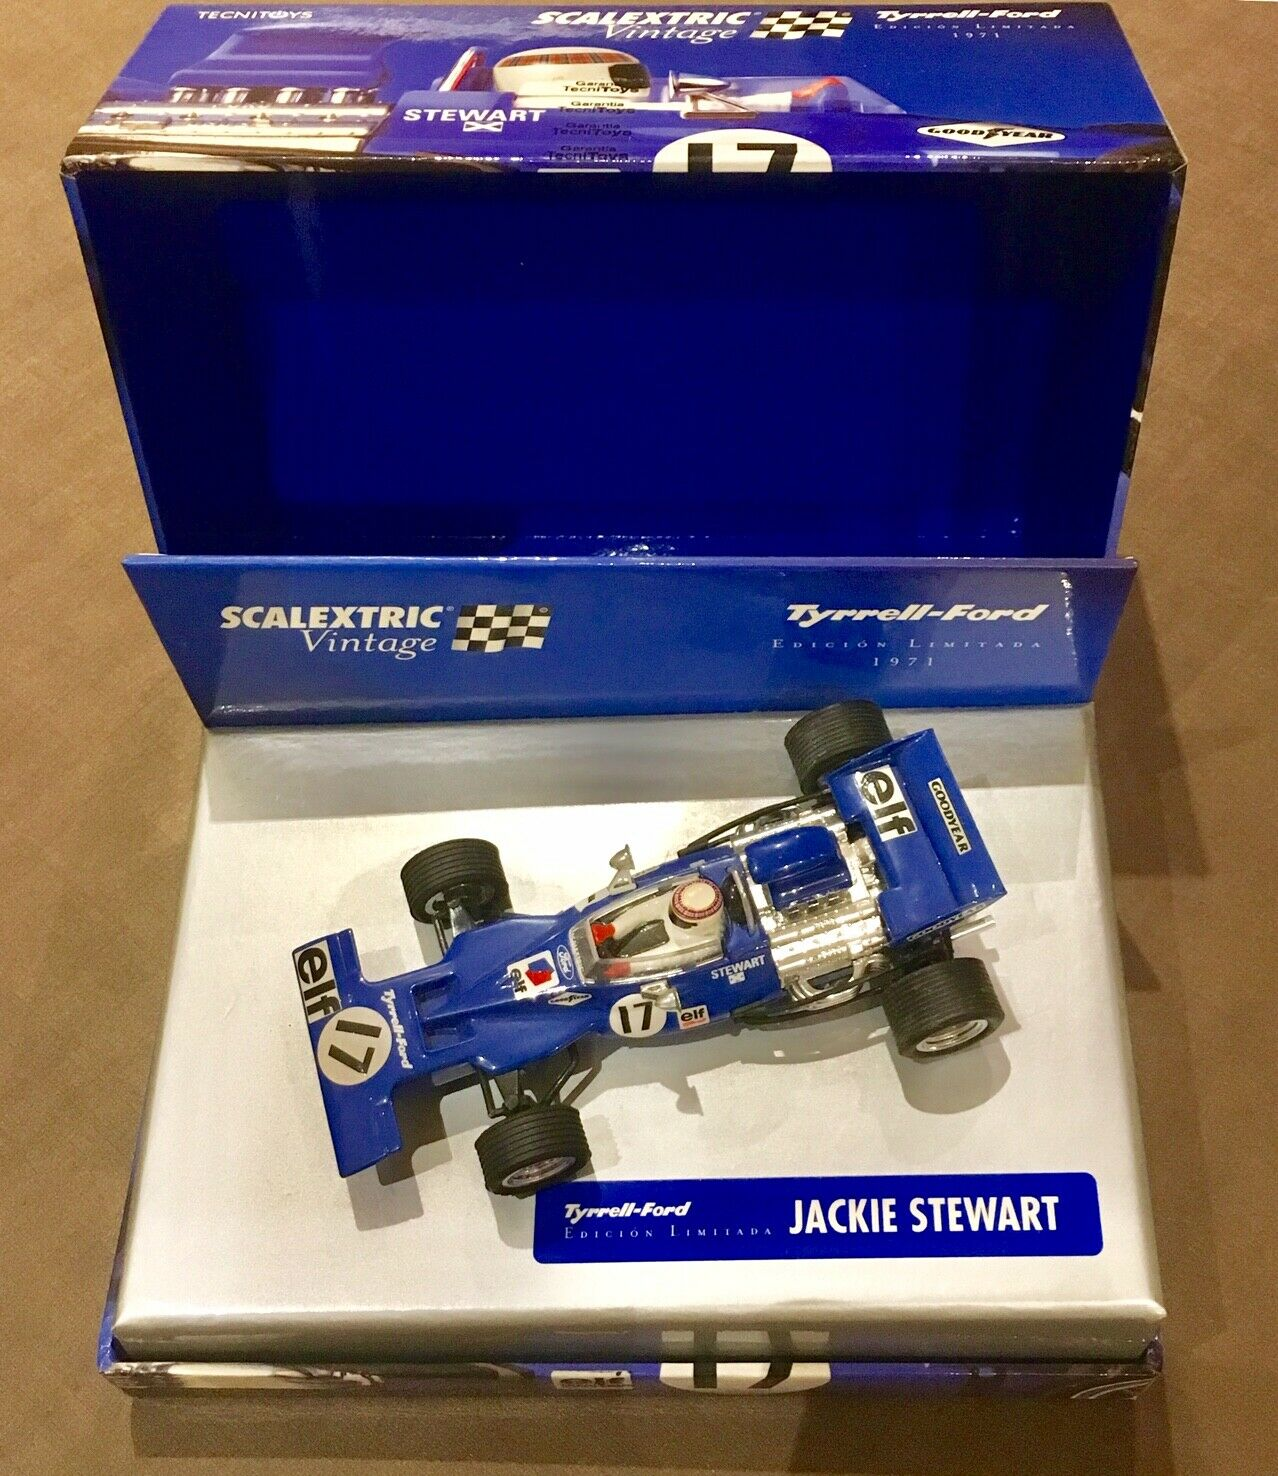 SCX Slot Scalextric 6178 Tyrrell-Ford 001 F1 Vintage Edition